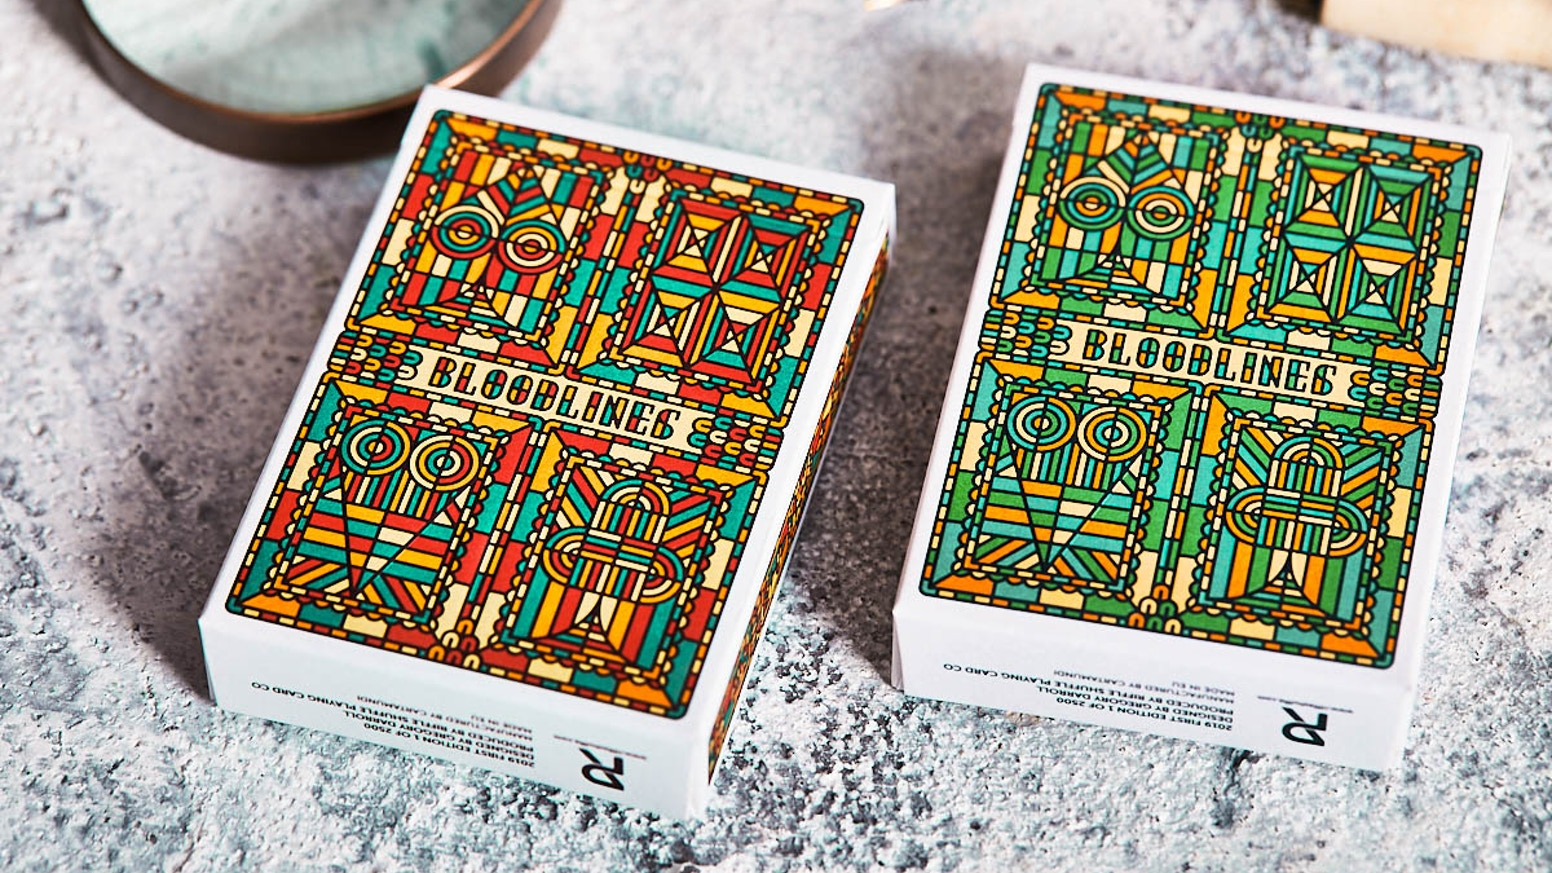 Surprises with a stained-glass looking surface with many details. A true classic for playing card collectors.